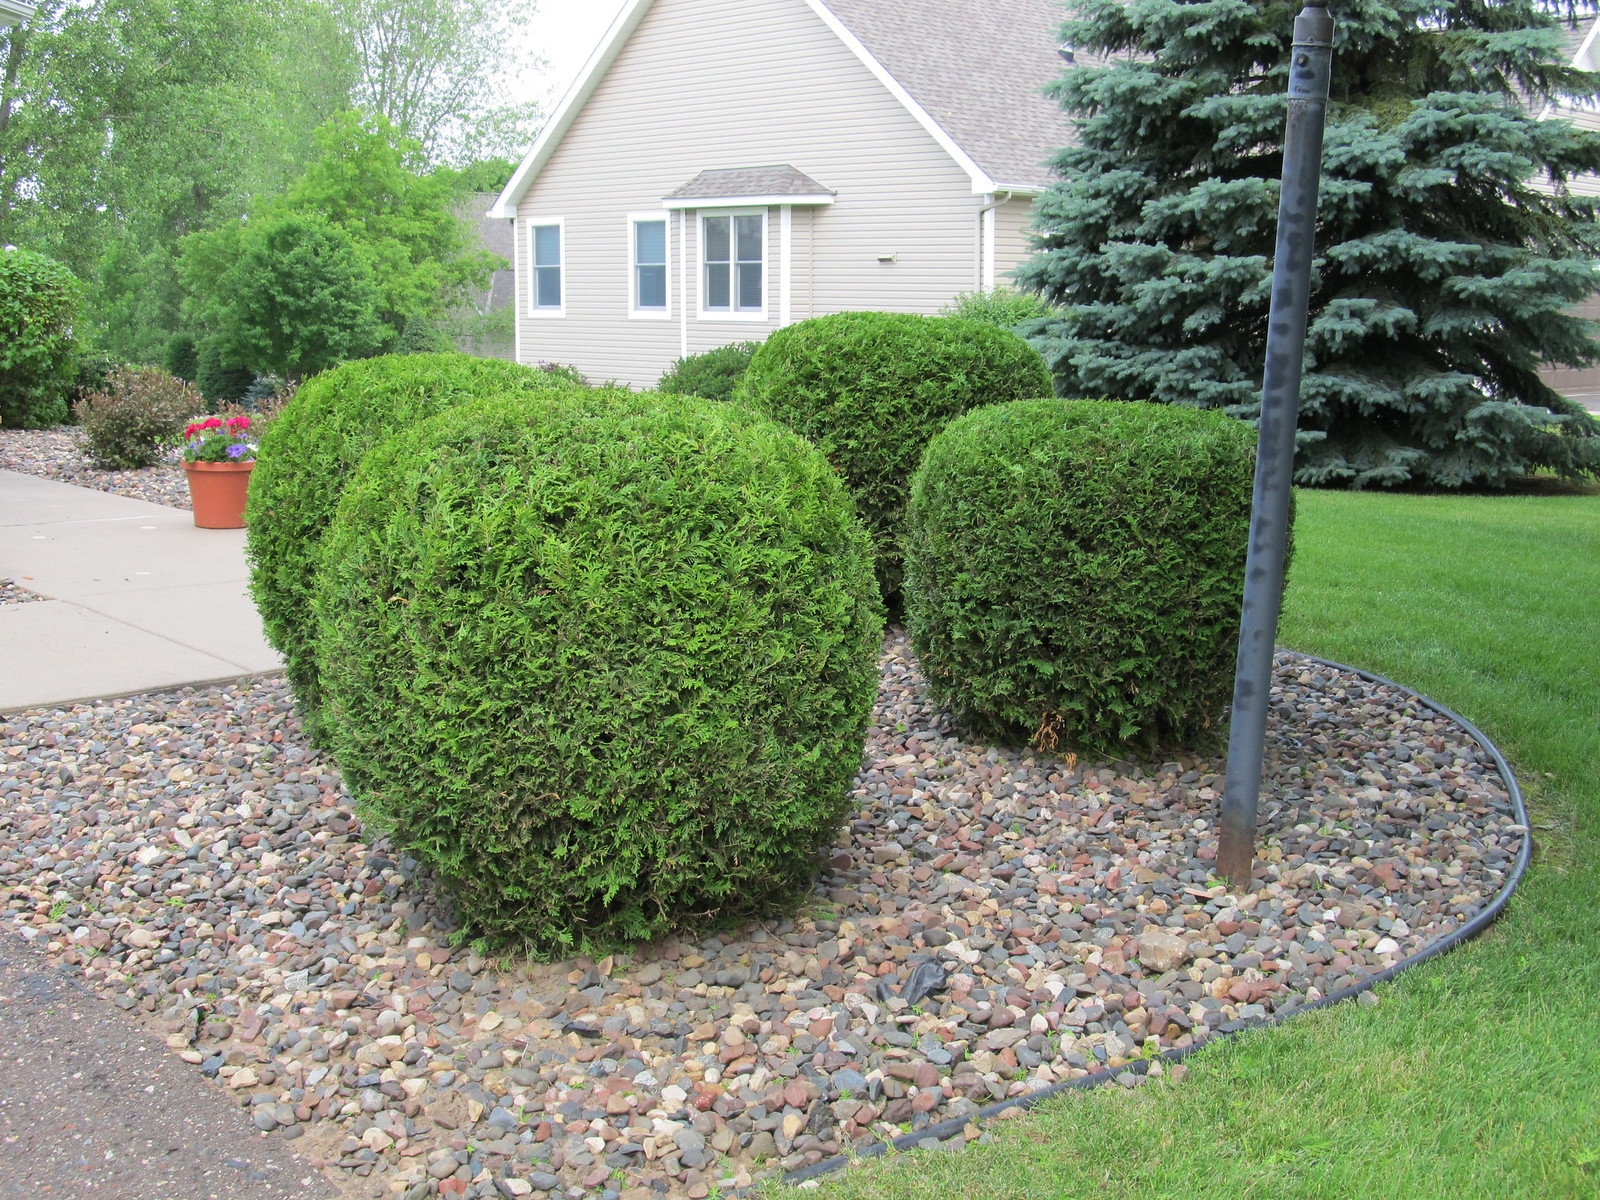 7664623974 4c2c62b1c4 for Front yard plants